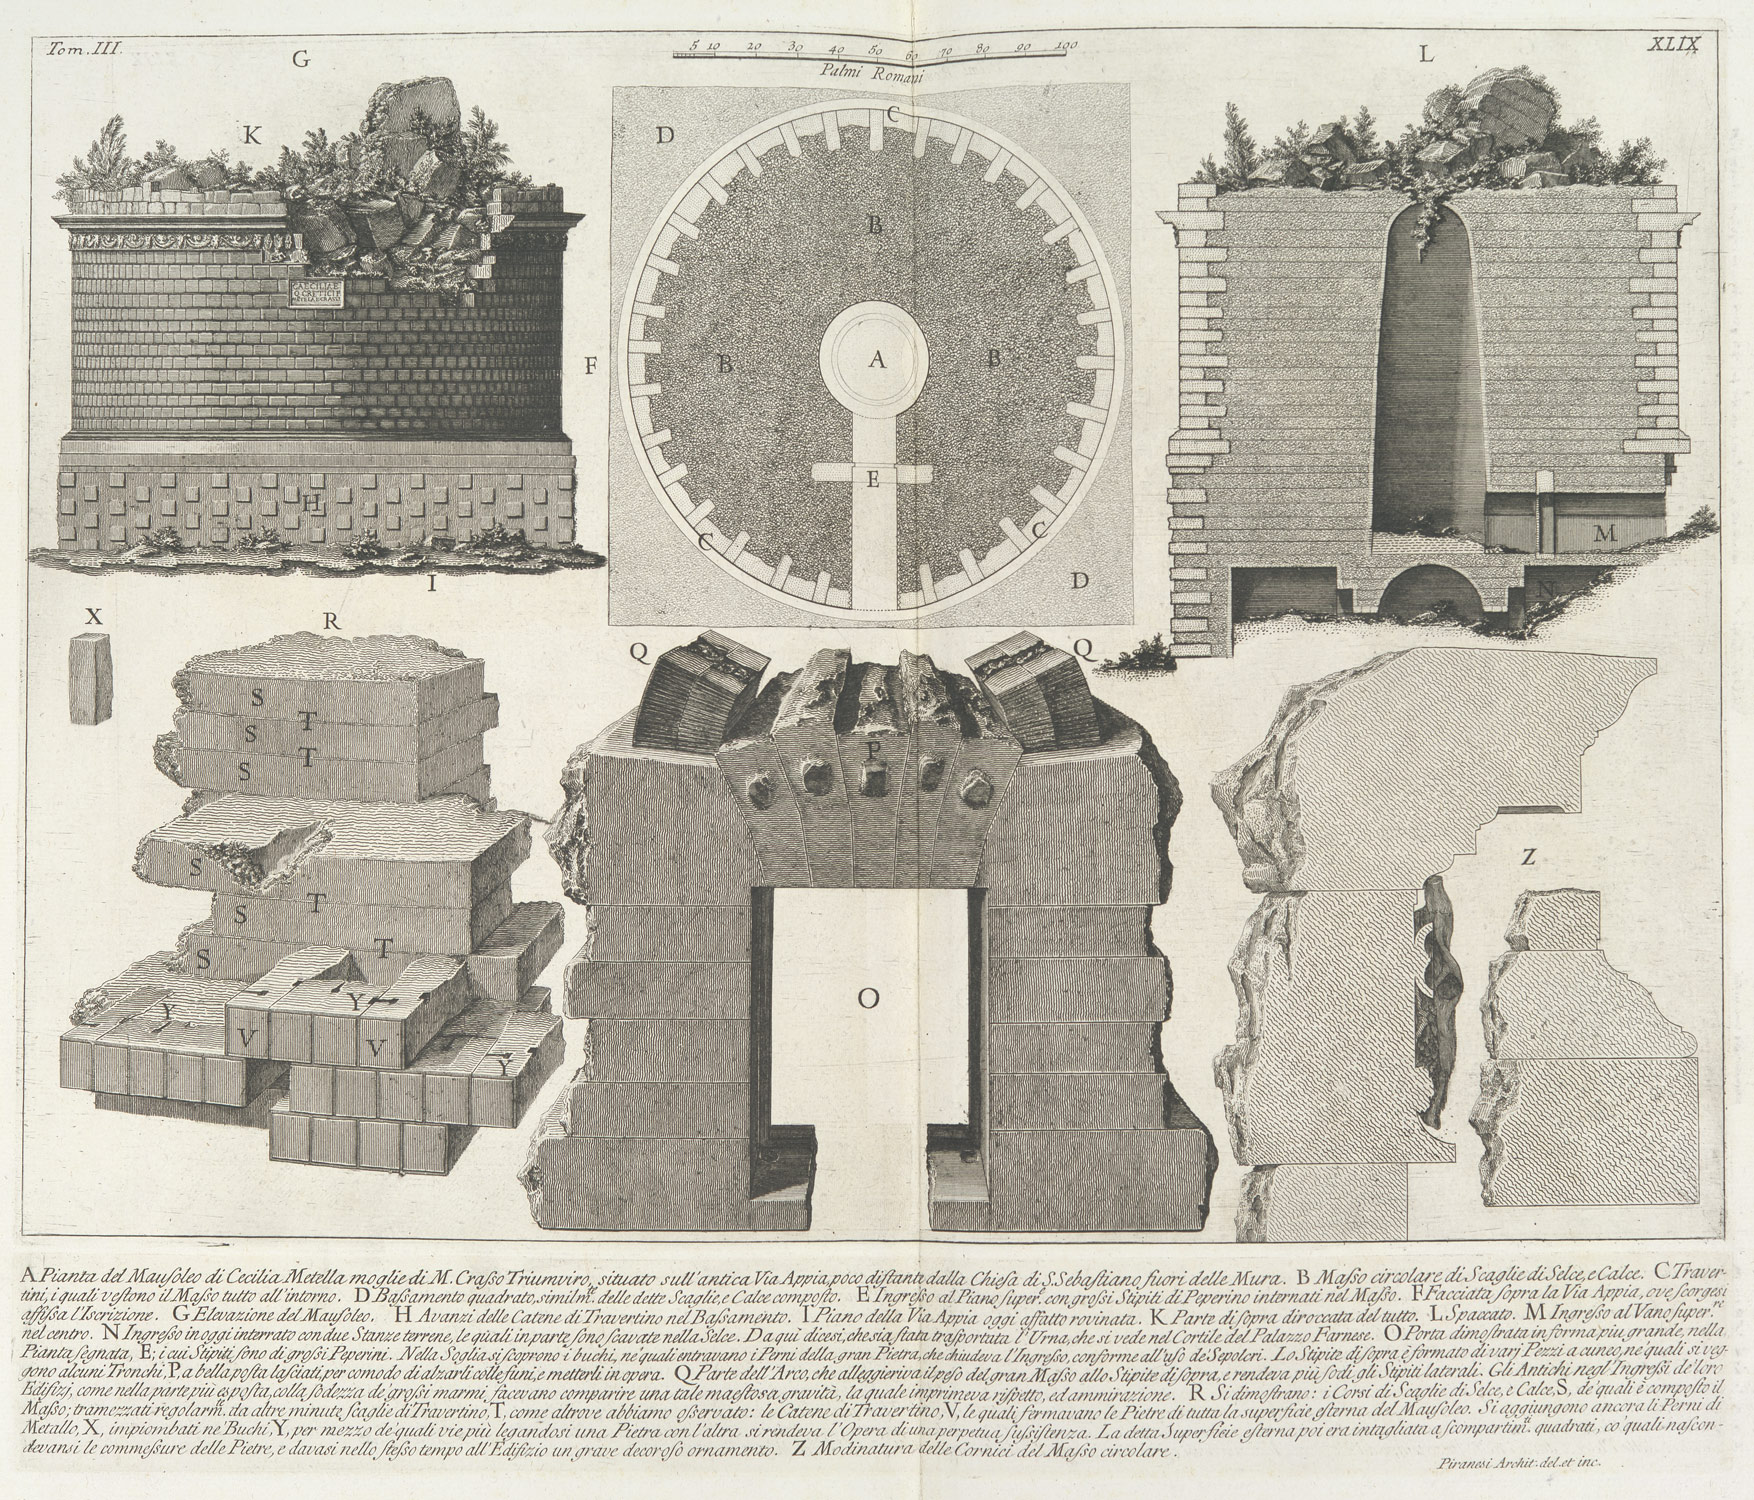 Plan of the Mausoleum of Caecilia Metella, wife of the Triumvir Marcus Crassus...,  from Le Antichità Romane (Roman Antiquities), tome 3, tavola 49